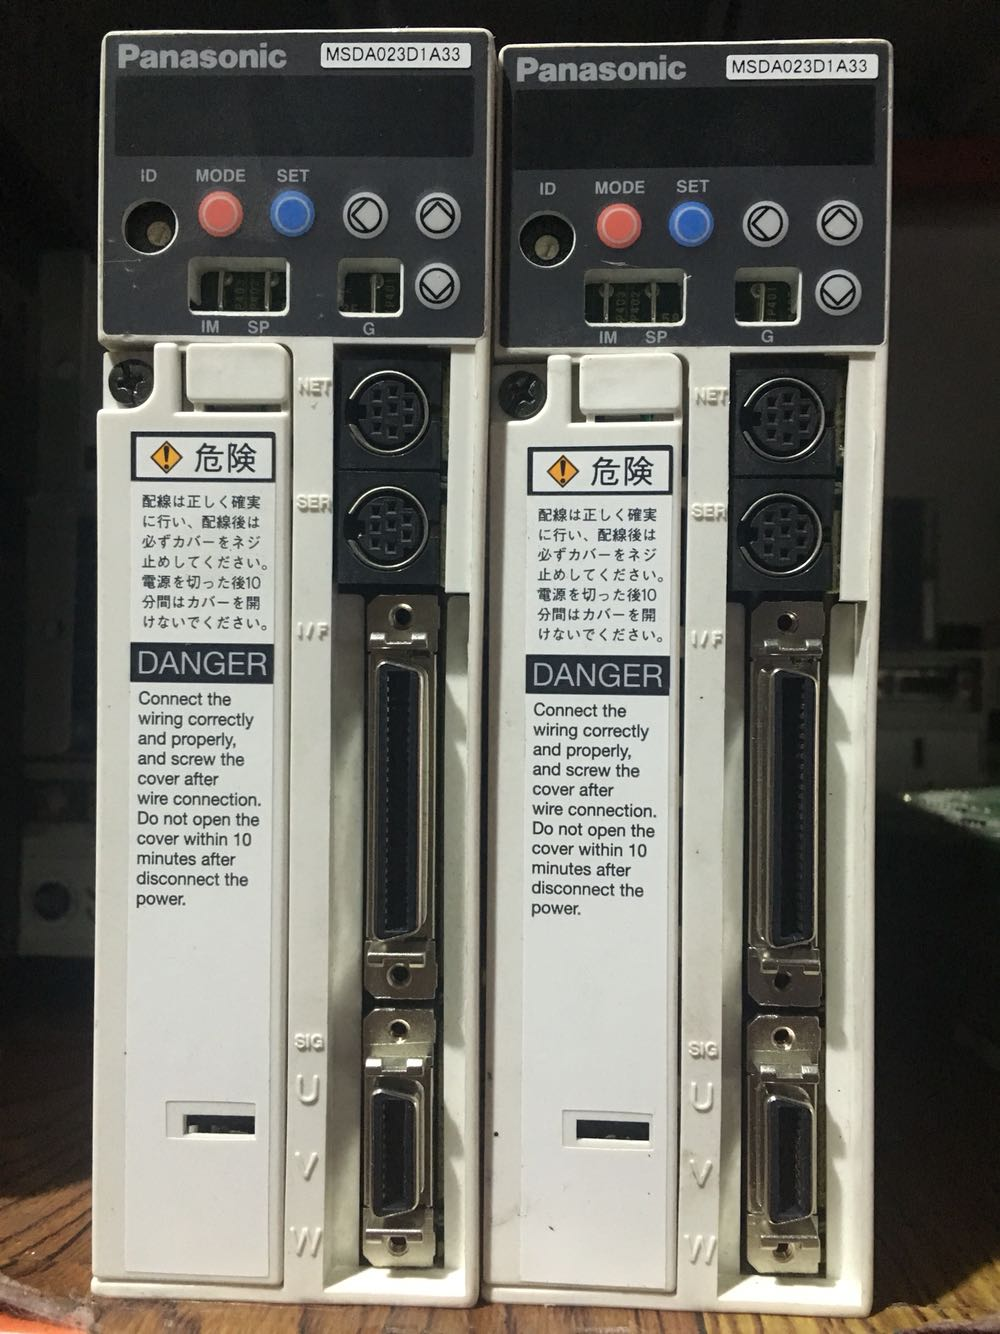 Servo drive MSDA023D1A33  ,  Used  one , 90% appearance new , 3 months warranty , fastly shipping Servo drive MSDA023D1A33  ,  Used  one , 90% appearance new , 3 months warranty , fastly shipping